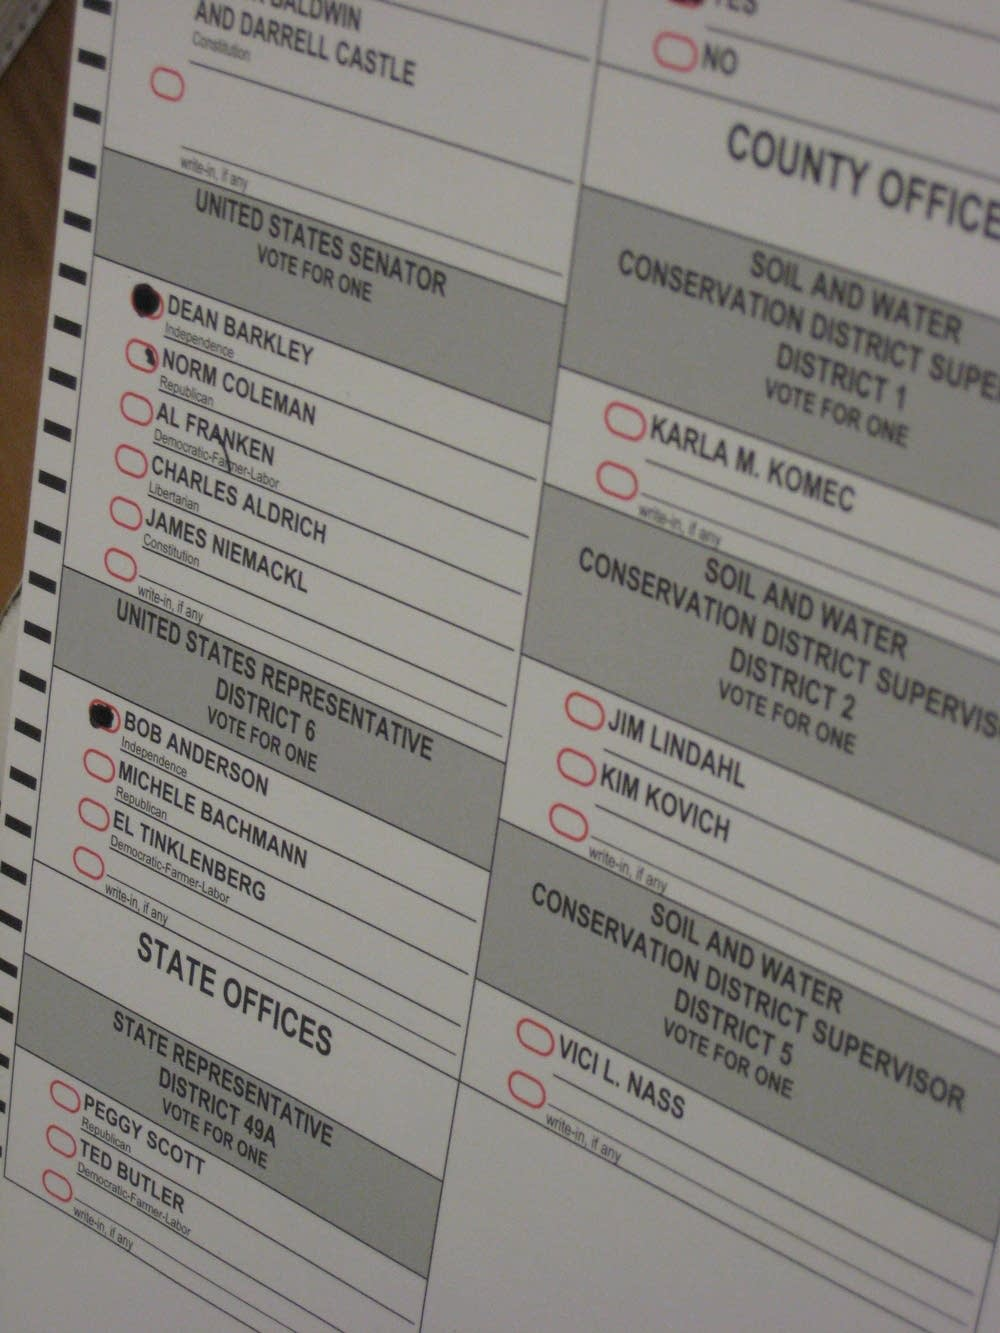 A ballot challenged by the Coleman campaign